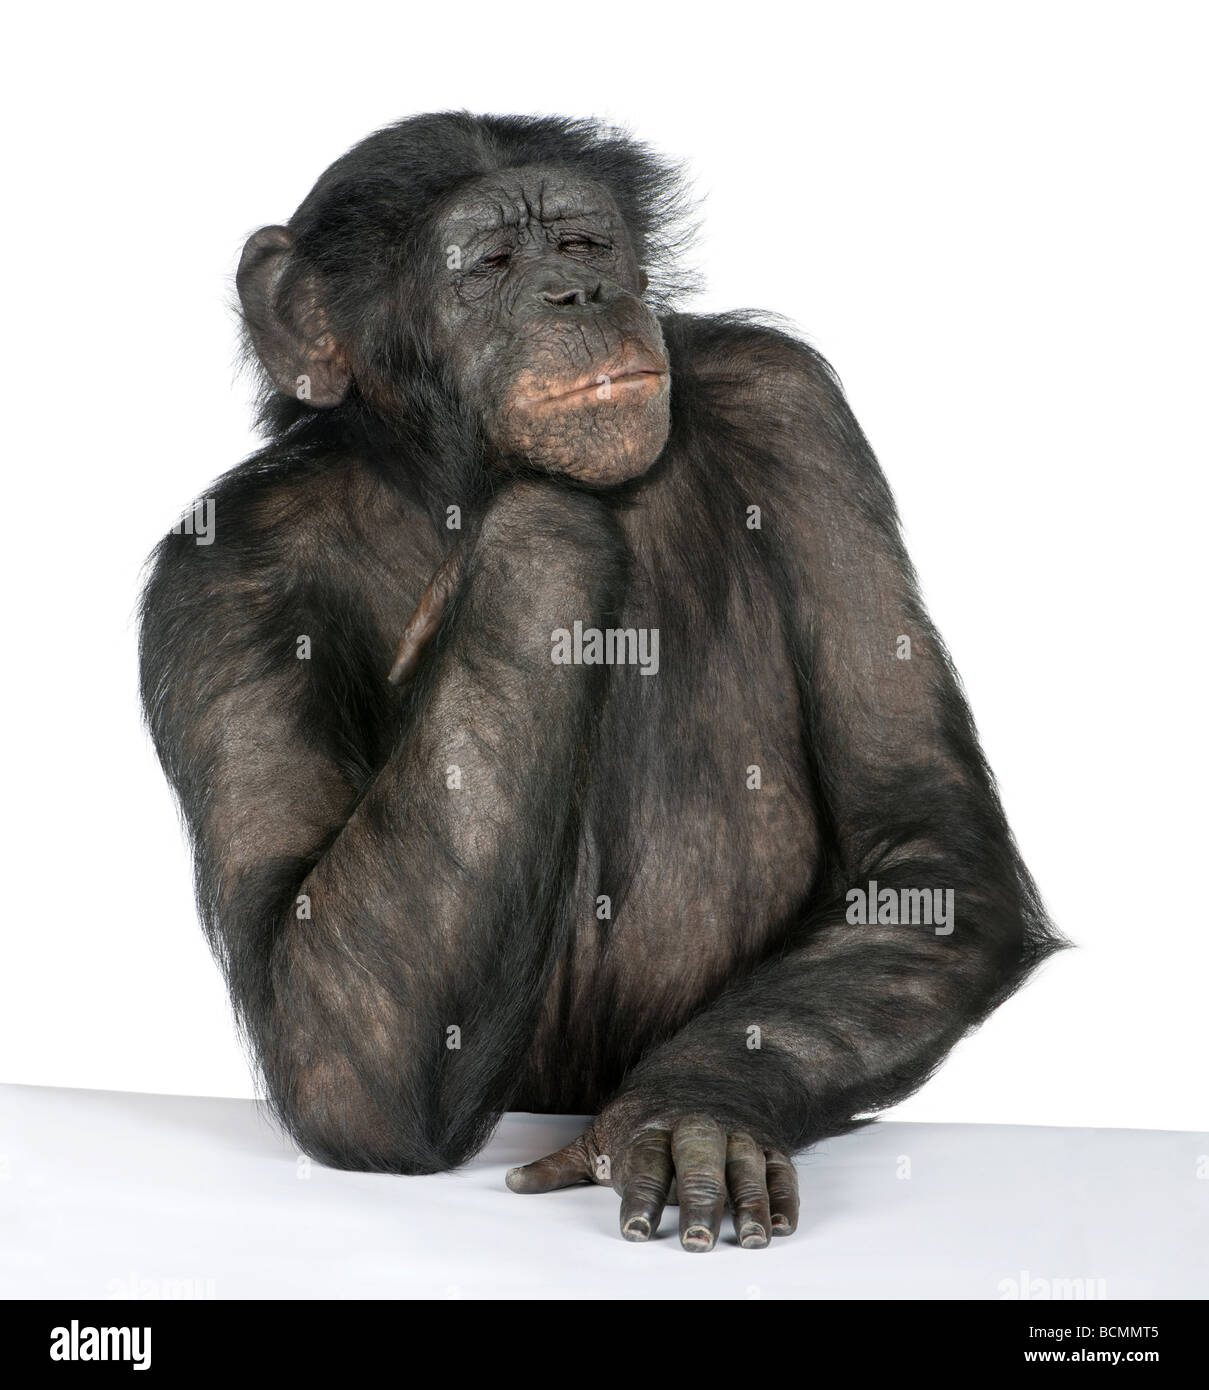 Thoughtful monkey at a table, Mixed Breed between Chimpanzee and Bonobo, 20 years old, in front of a white background - Stock Image